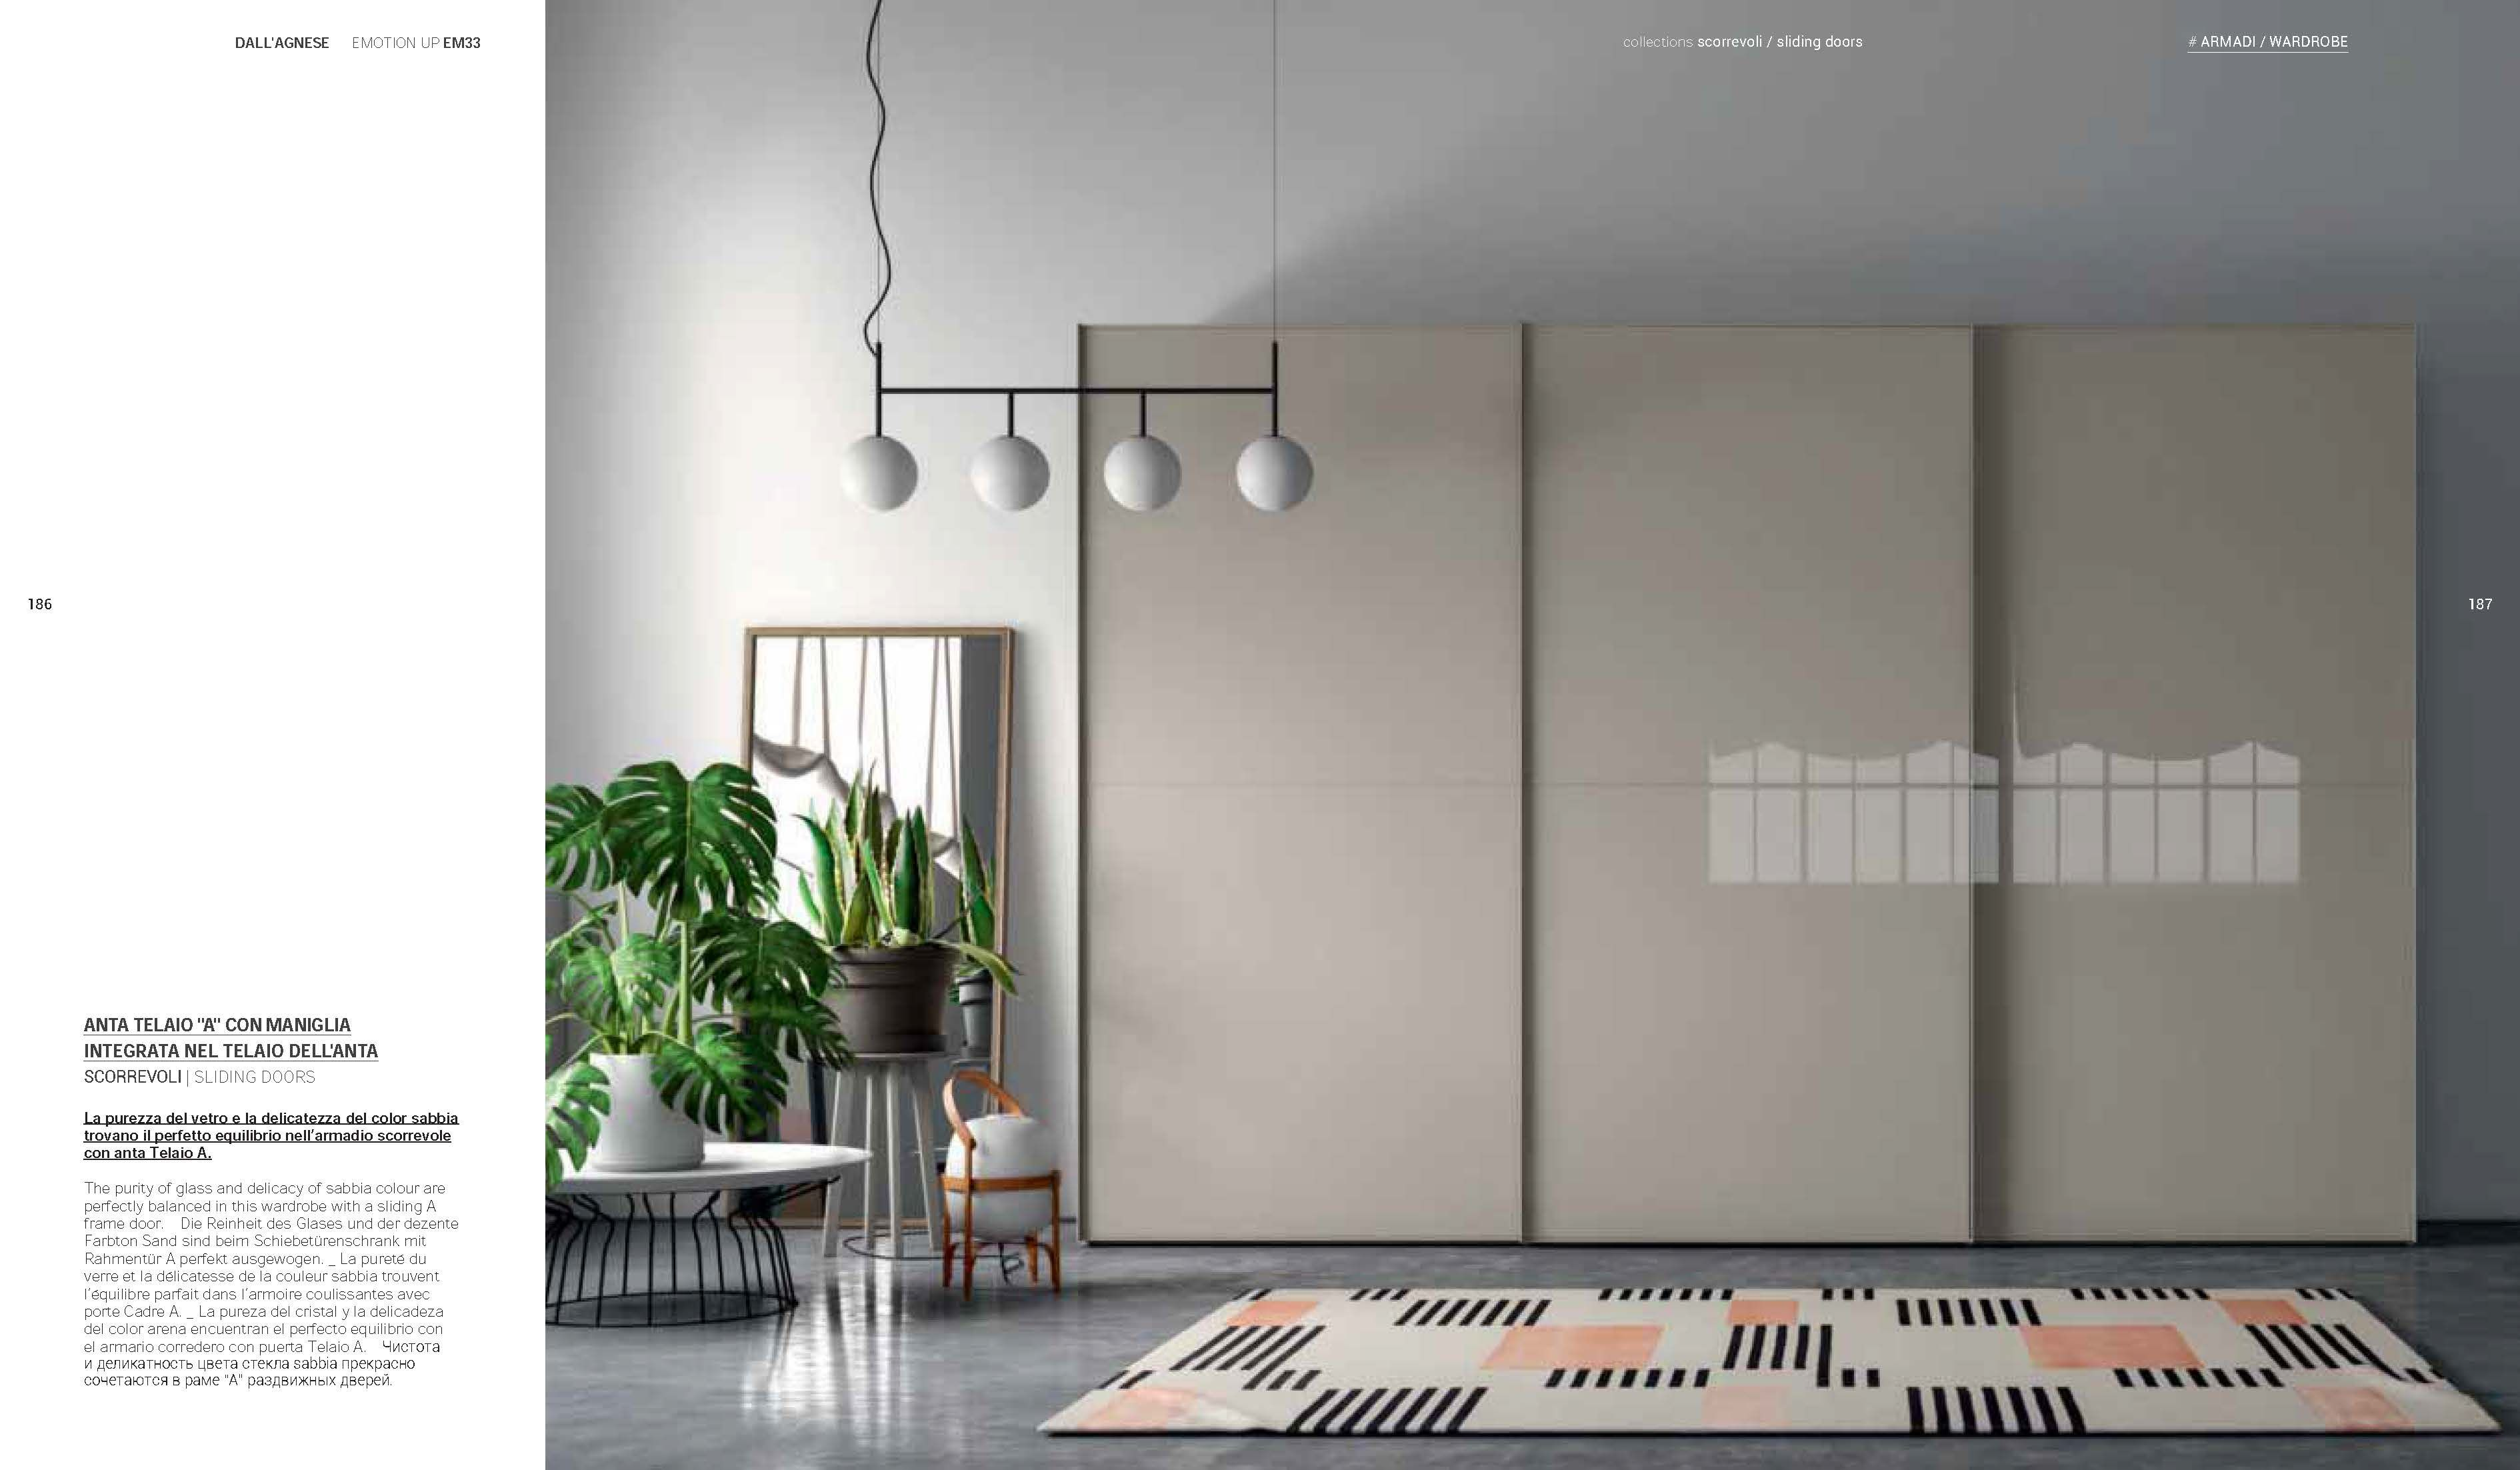 Armadio In Vetro dall'agnese the wardrobe collection 2019. sliding doors.anta